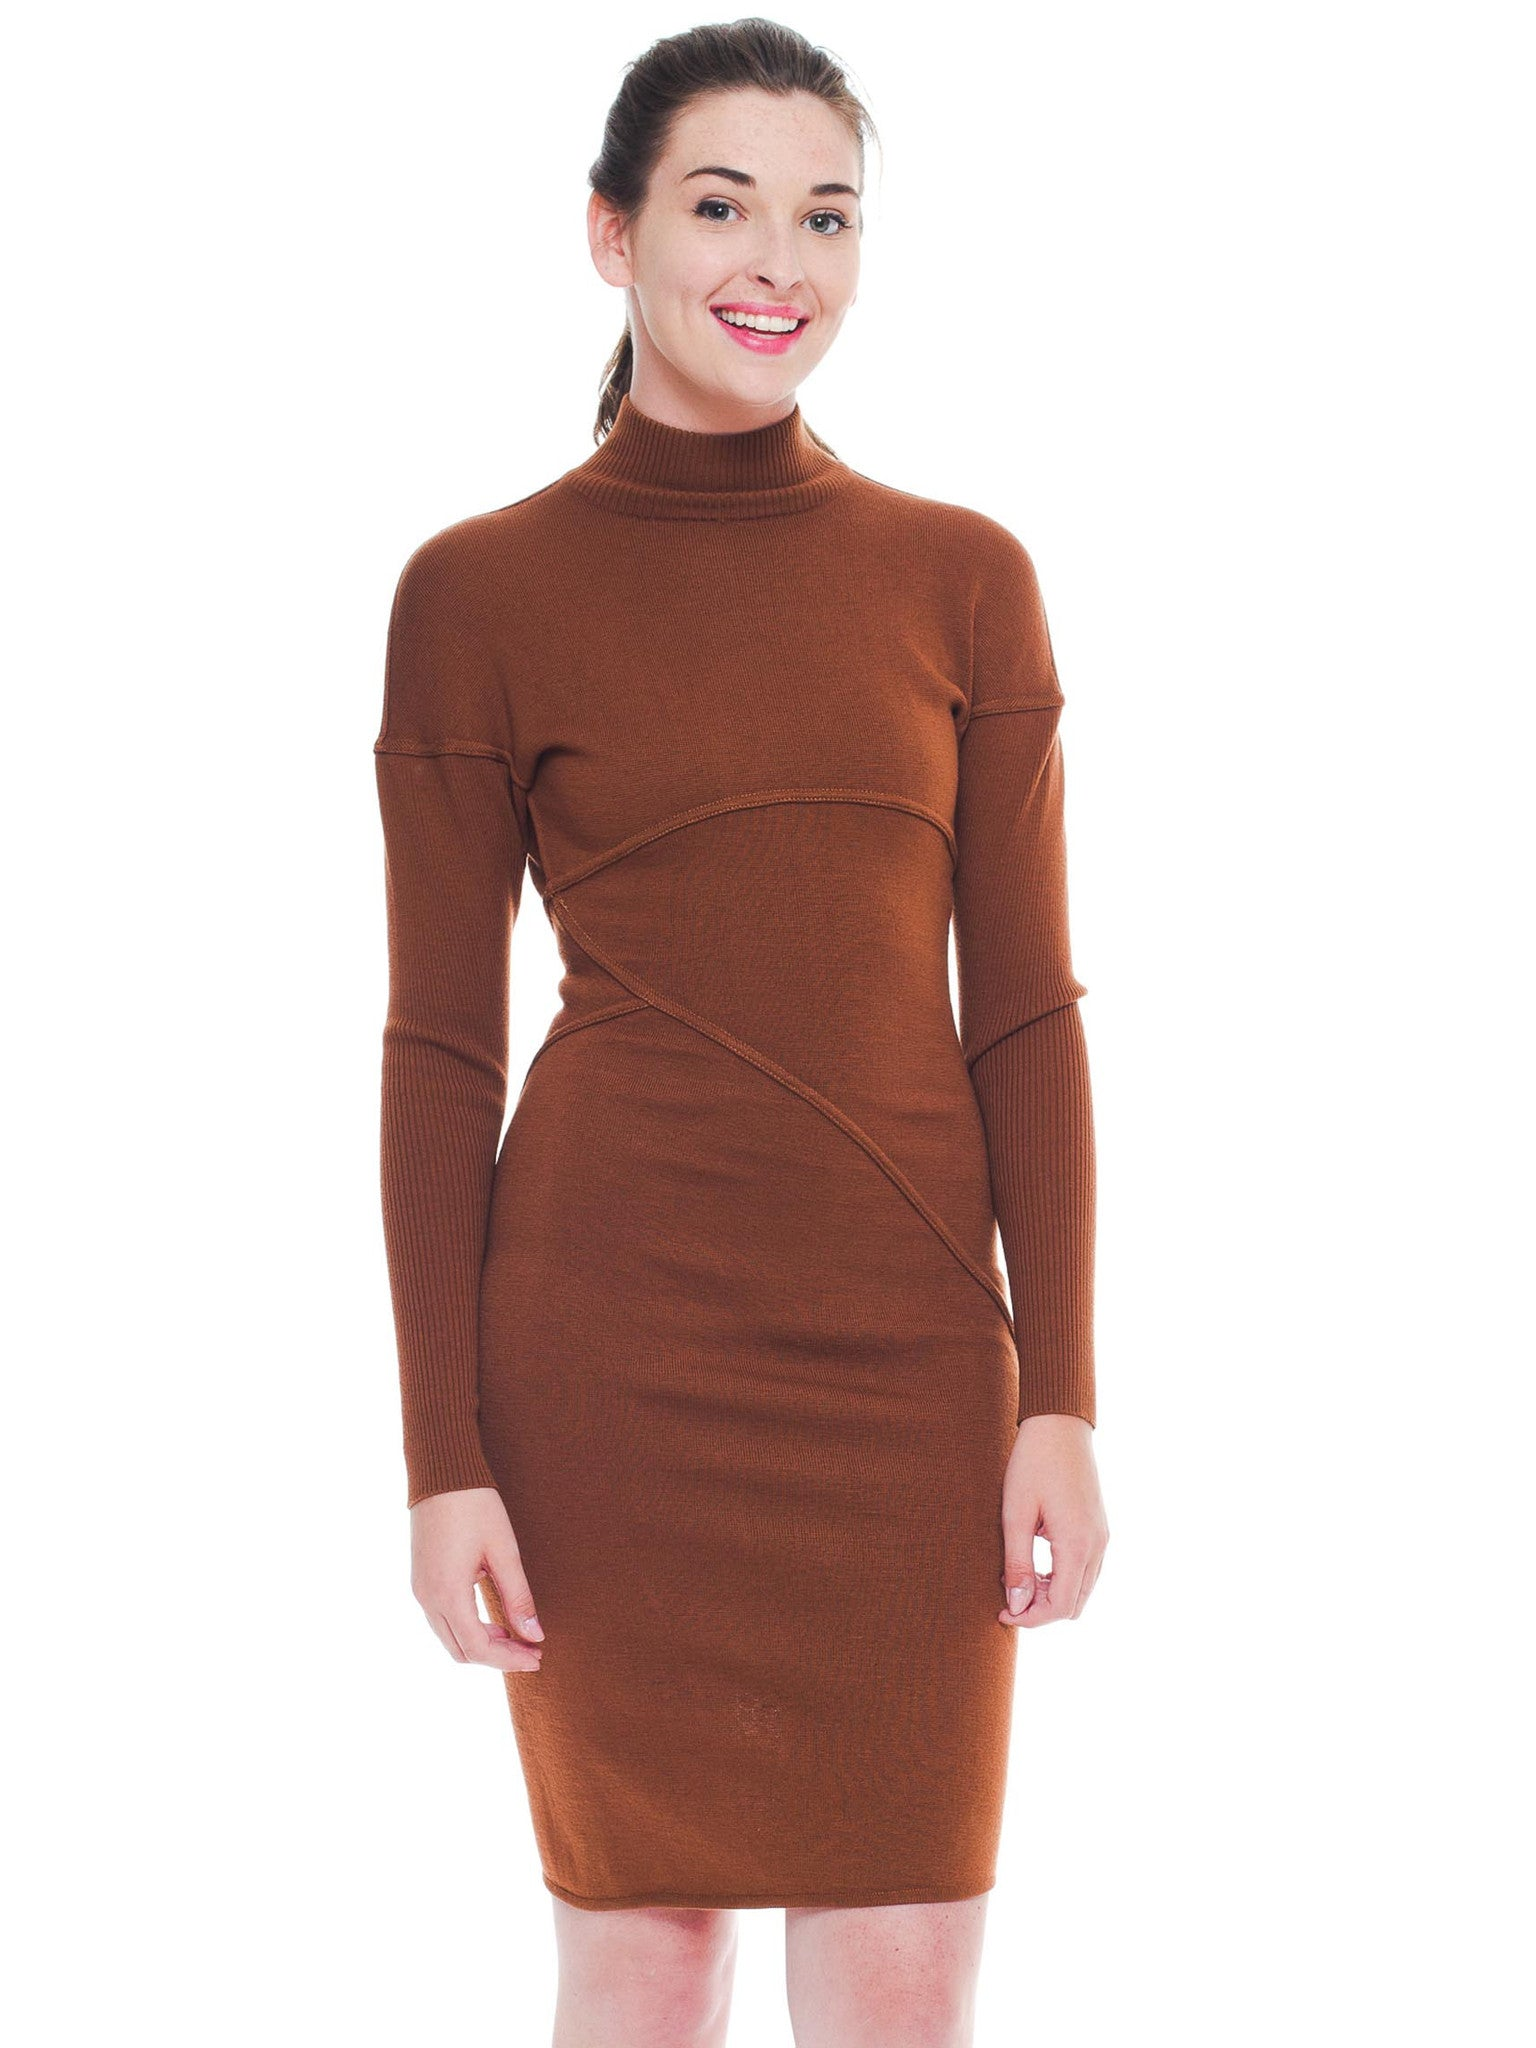 1980S AZZEDINE ALAIA Cinnamon Brown Wool Knit Turtleneck Body-Con Dress With Diagonal Seaming